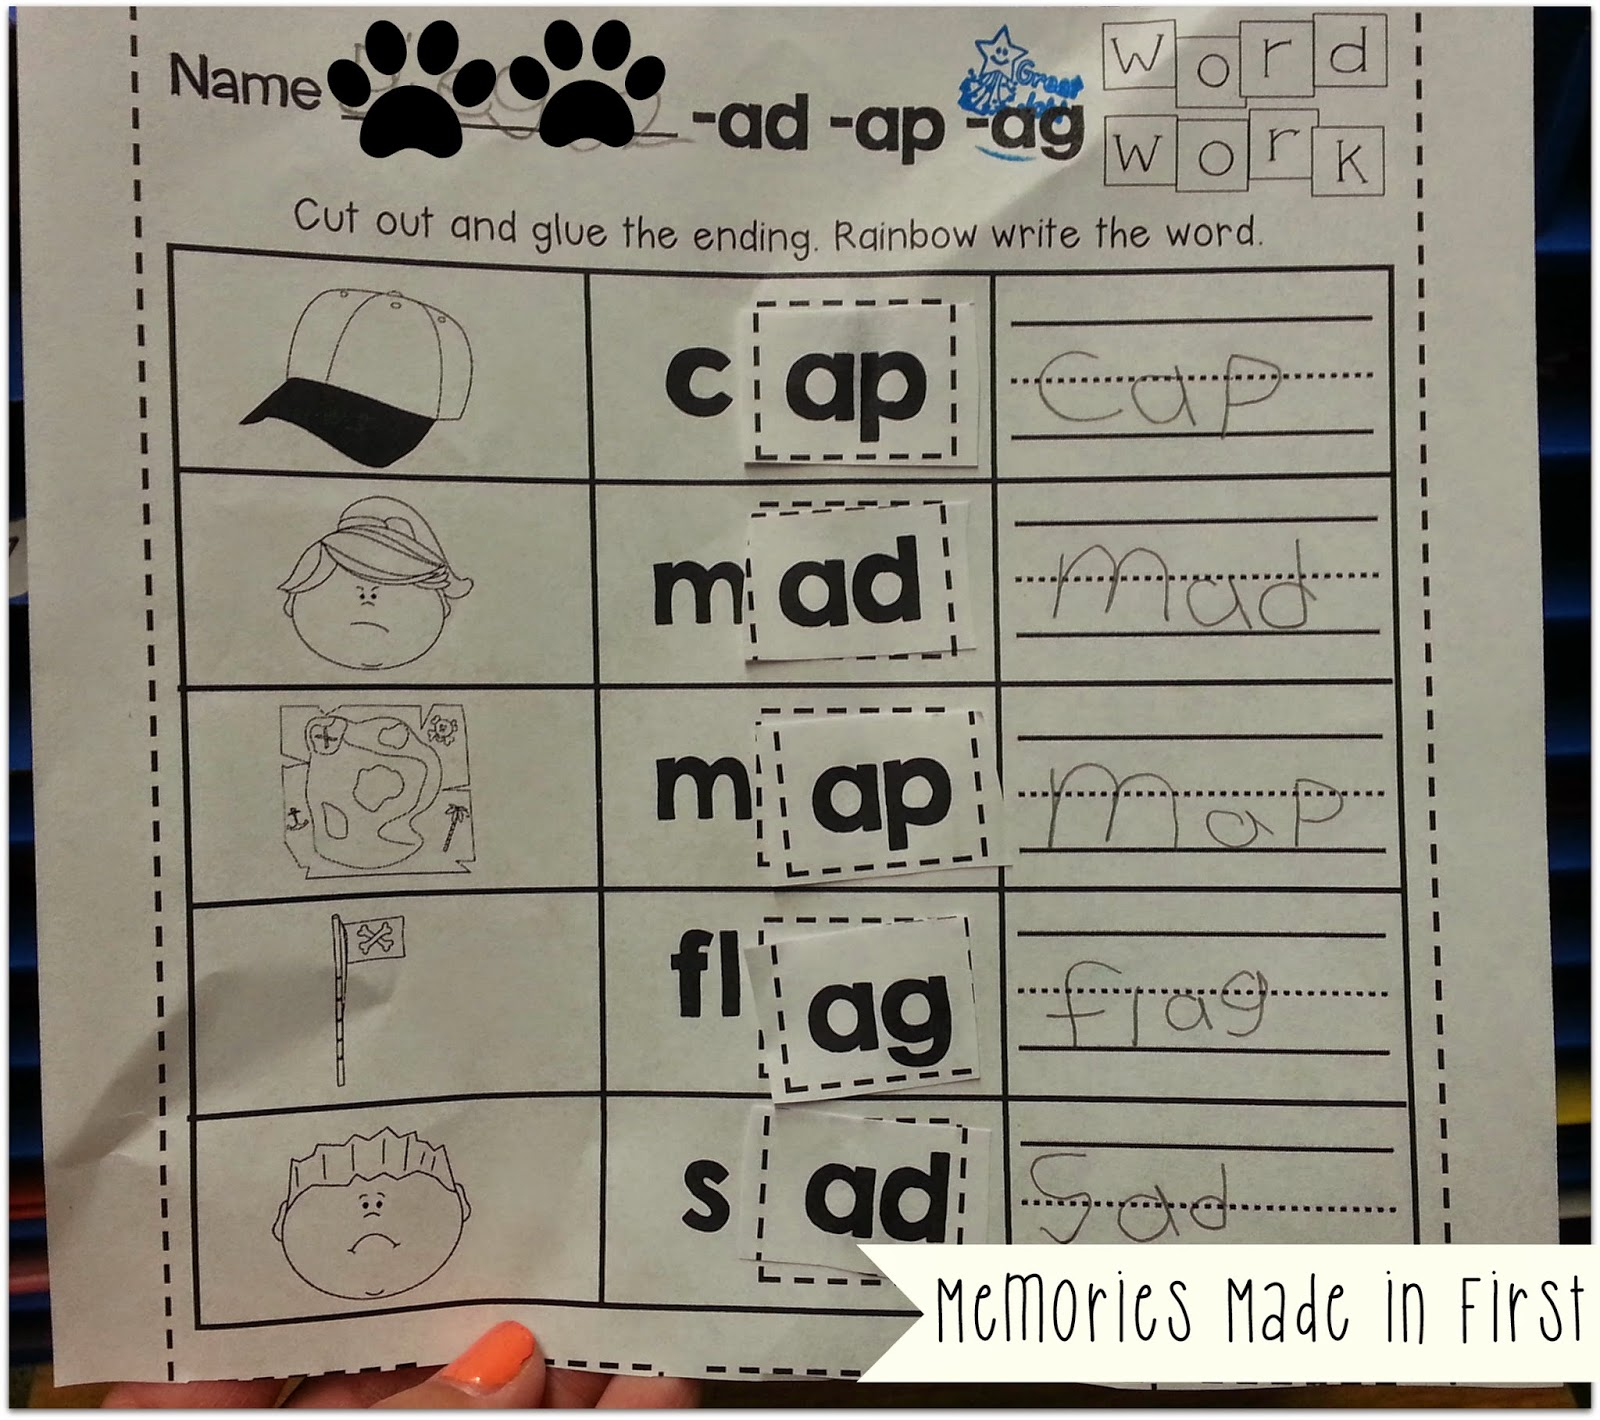 Memories Made In First Word Work Is Is How We Do It